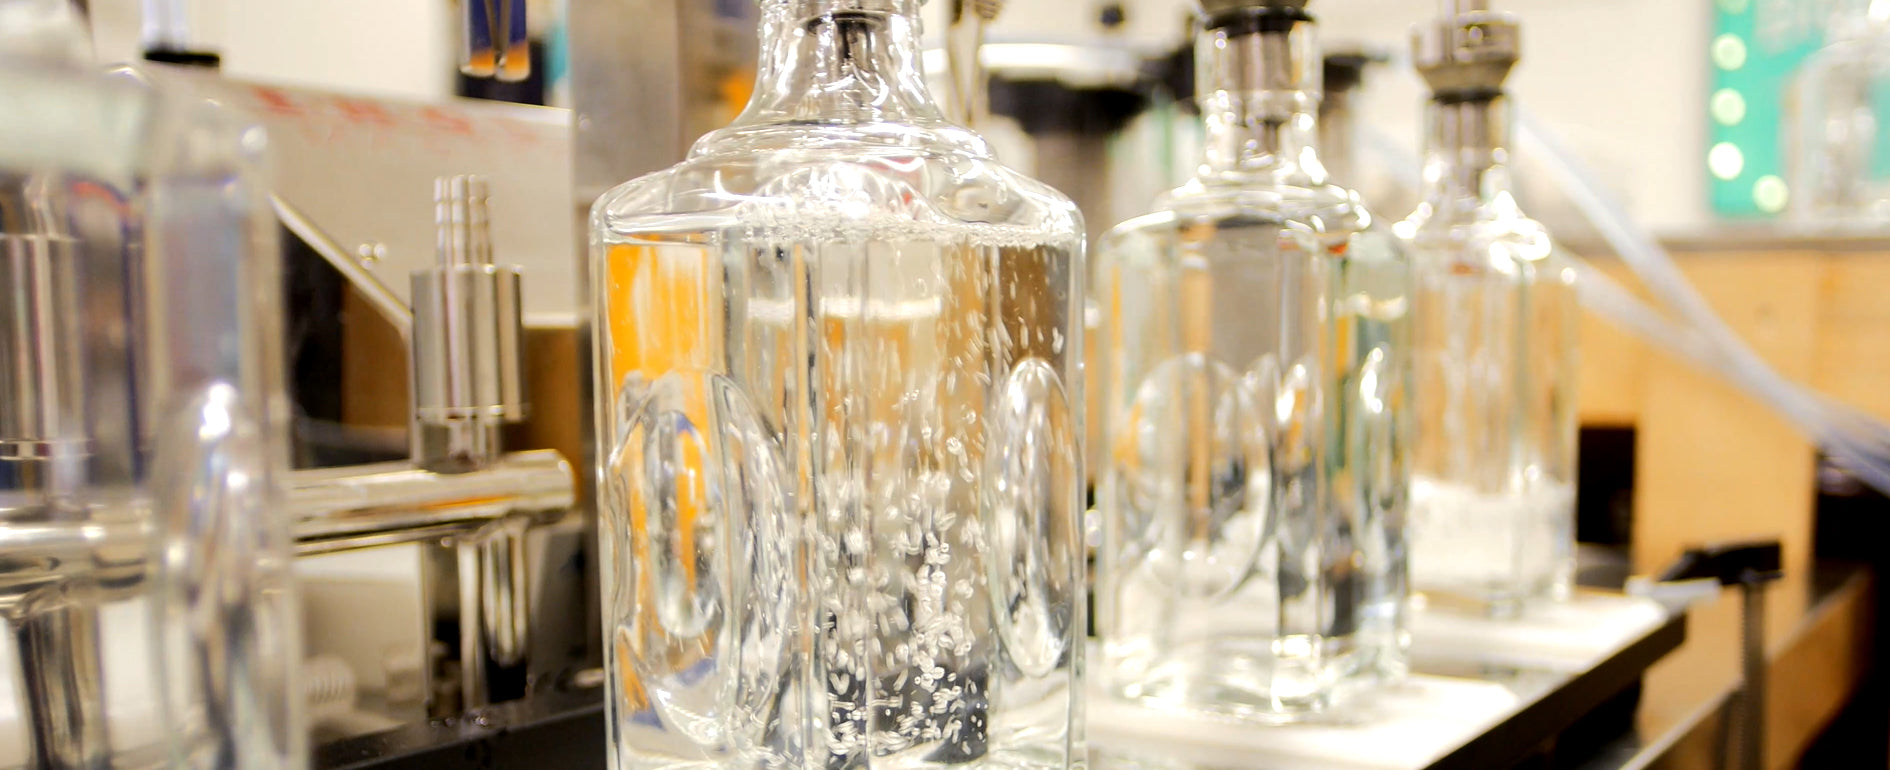 Bottling Brighton Gin at the gin distillery in Sussex